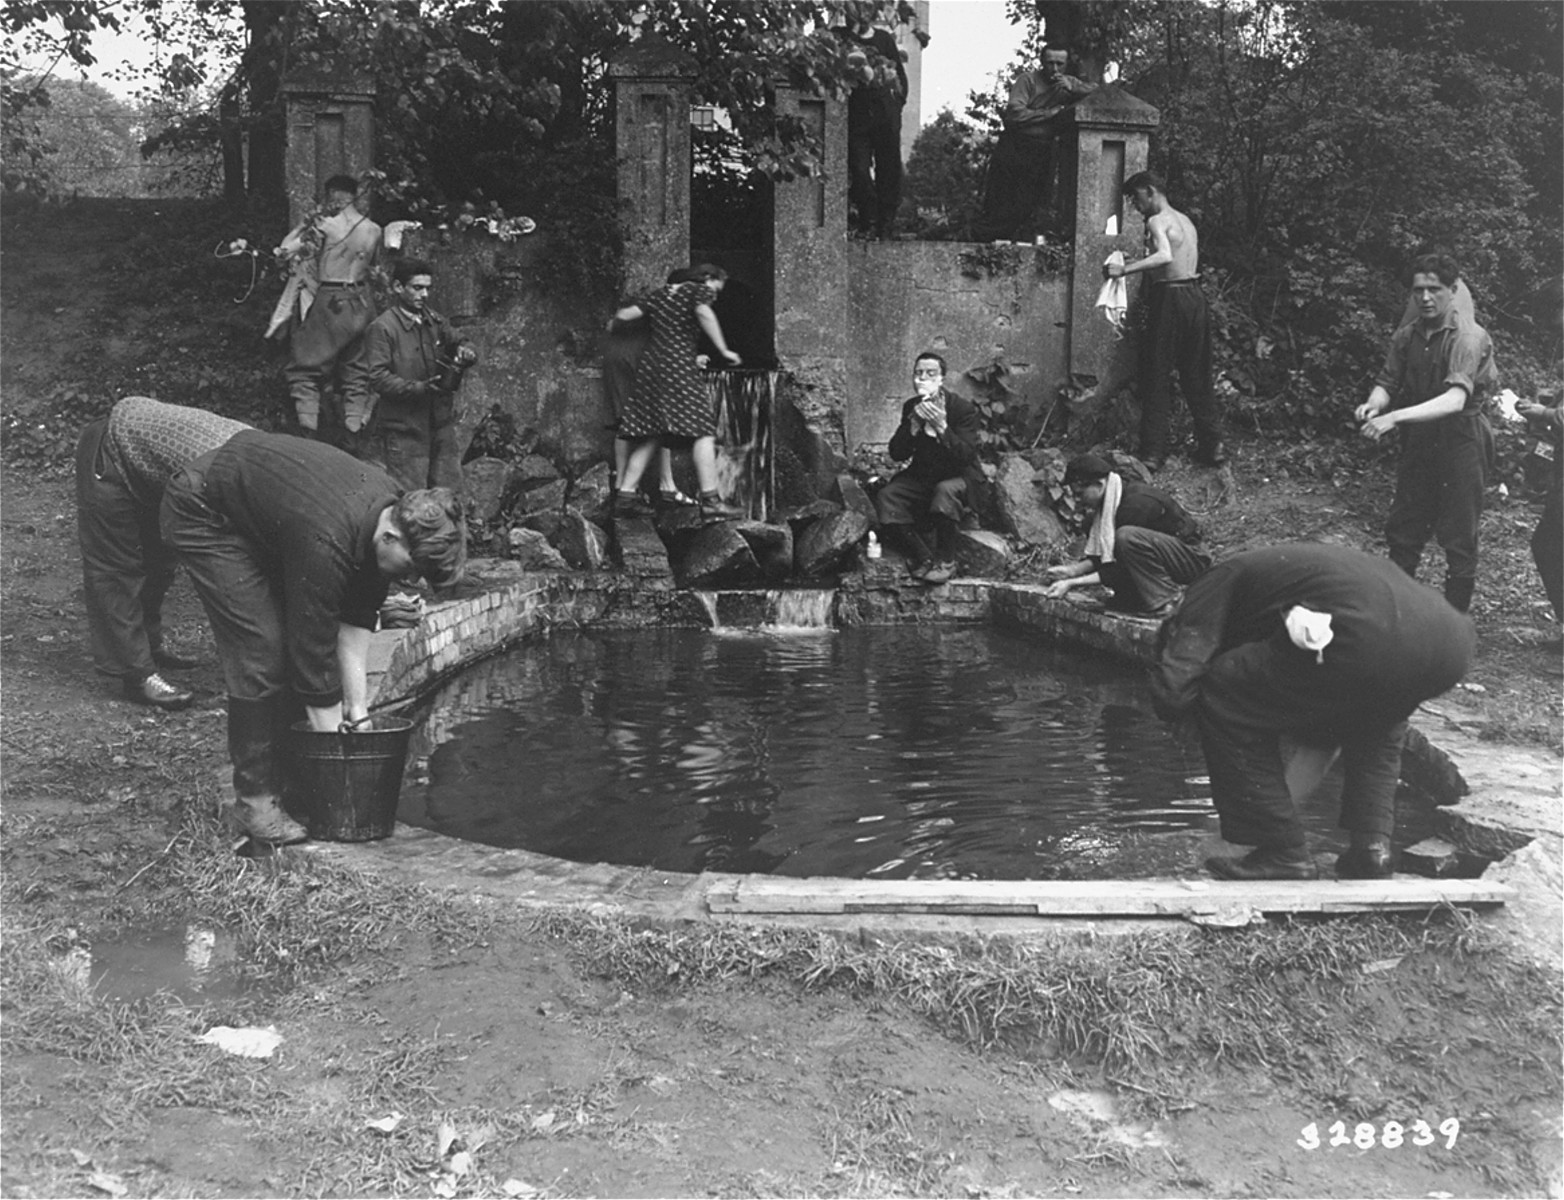 Jewish DPs wash up in a pool at a displaced persons camp near Hagenow, Germany.